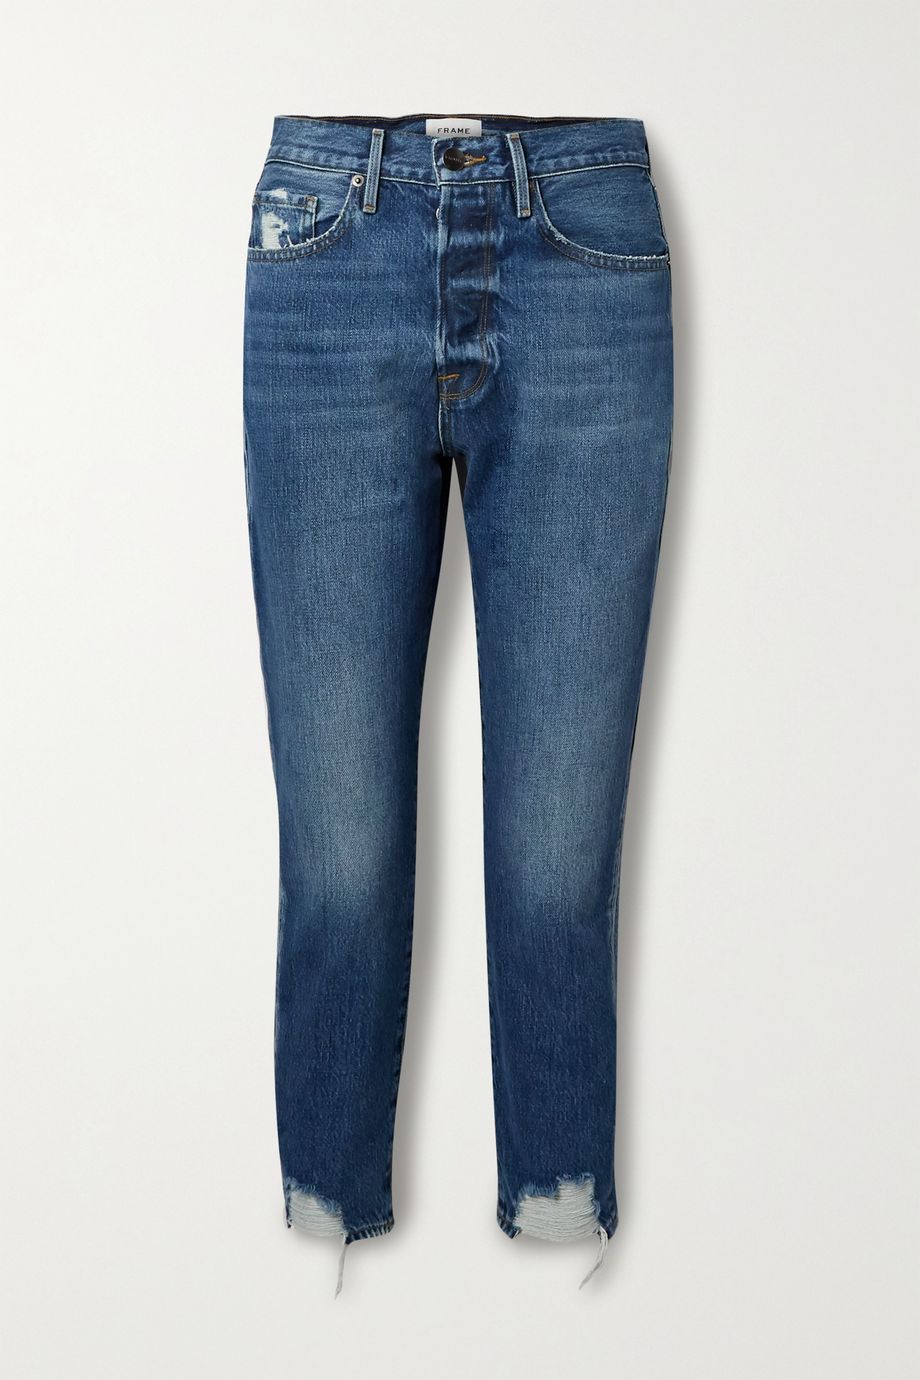 FRAME Le Original cropped distressed high-rise straight-leg jeans